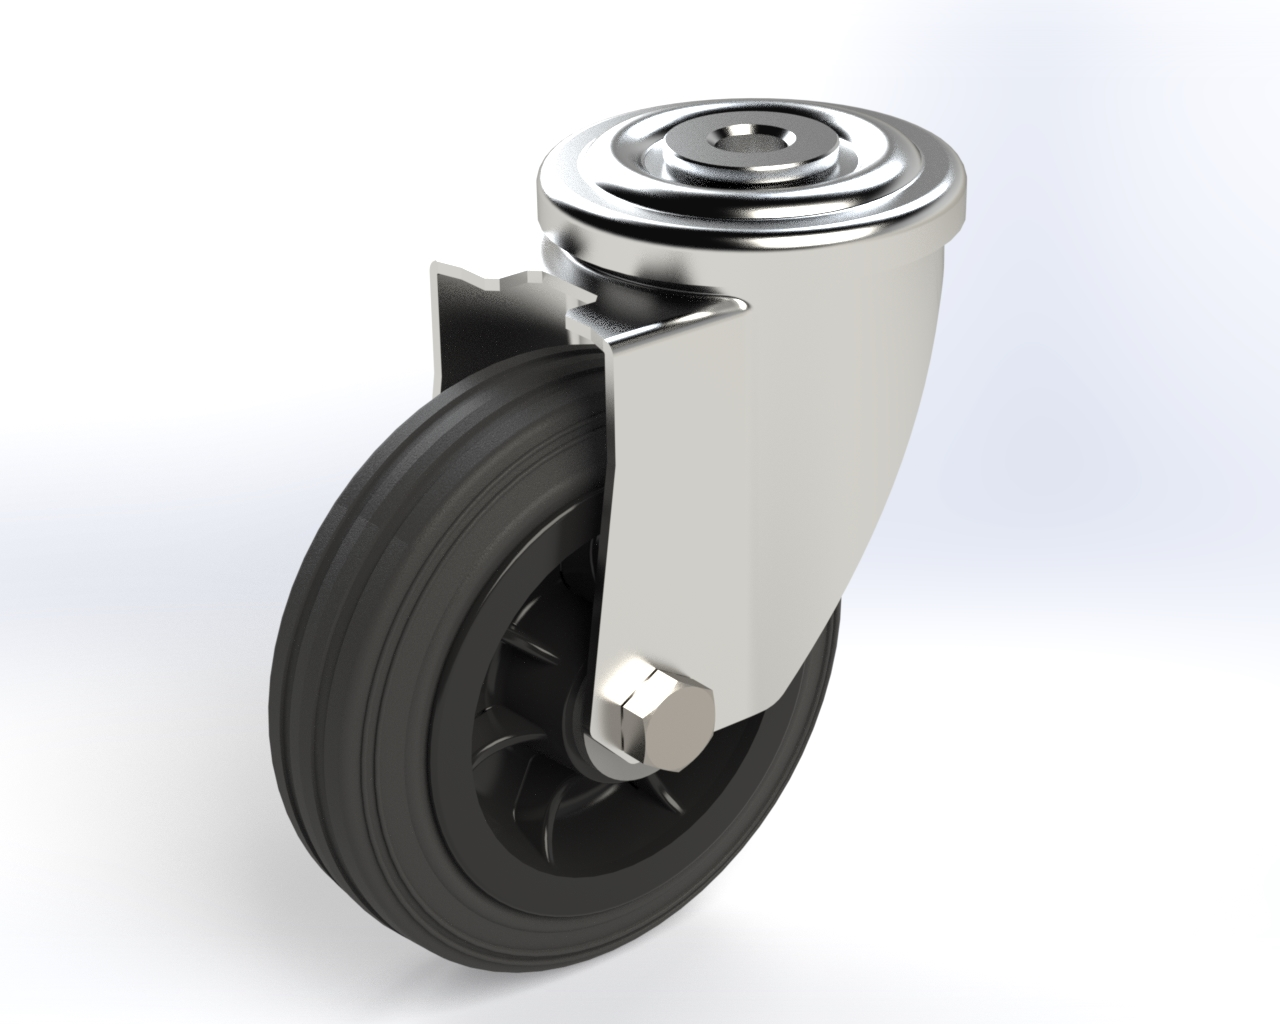 Series DZ roller bearing, Swivel castors M22 with bolt hole fitting